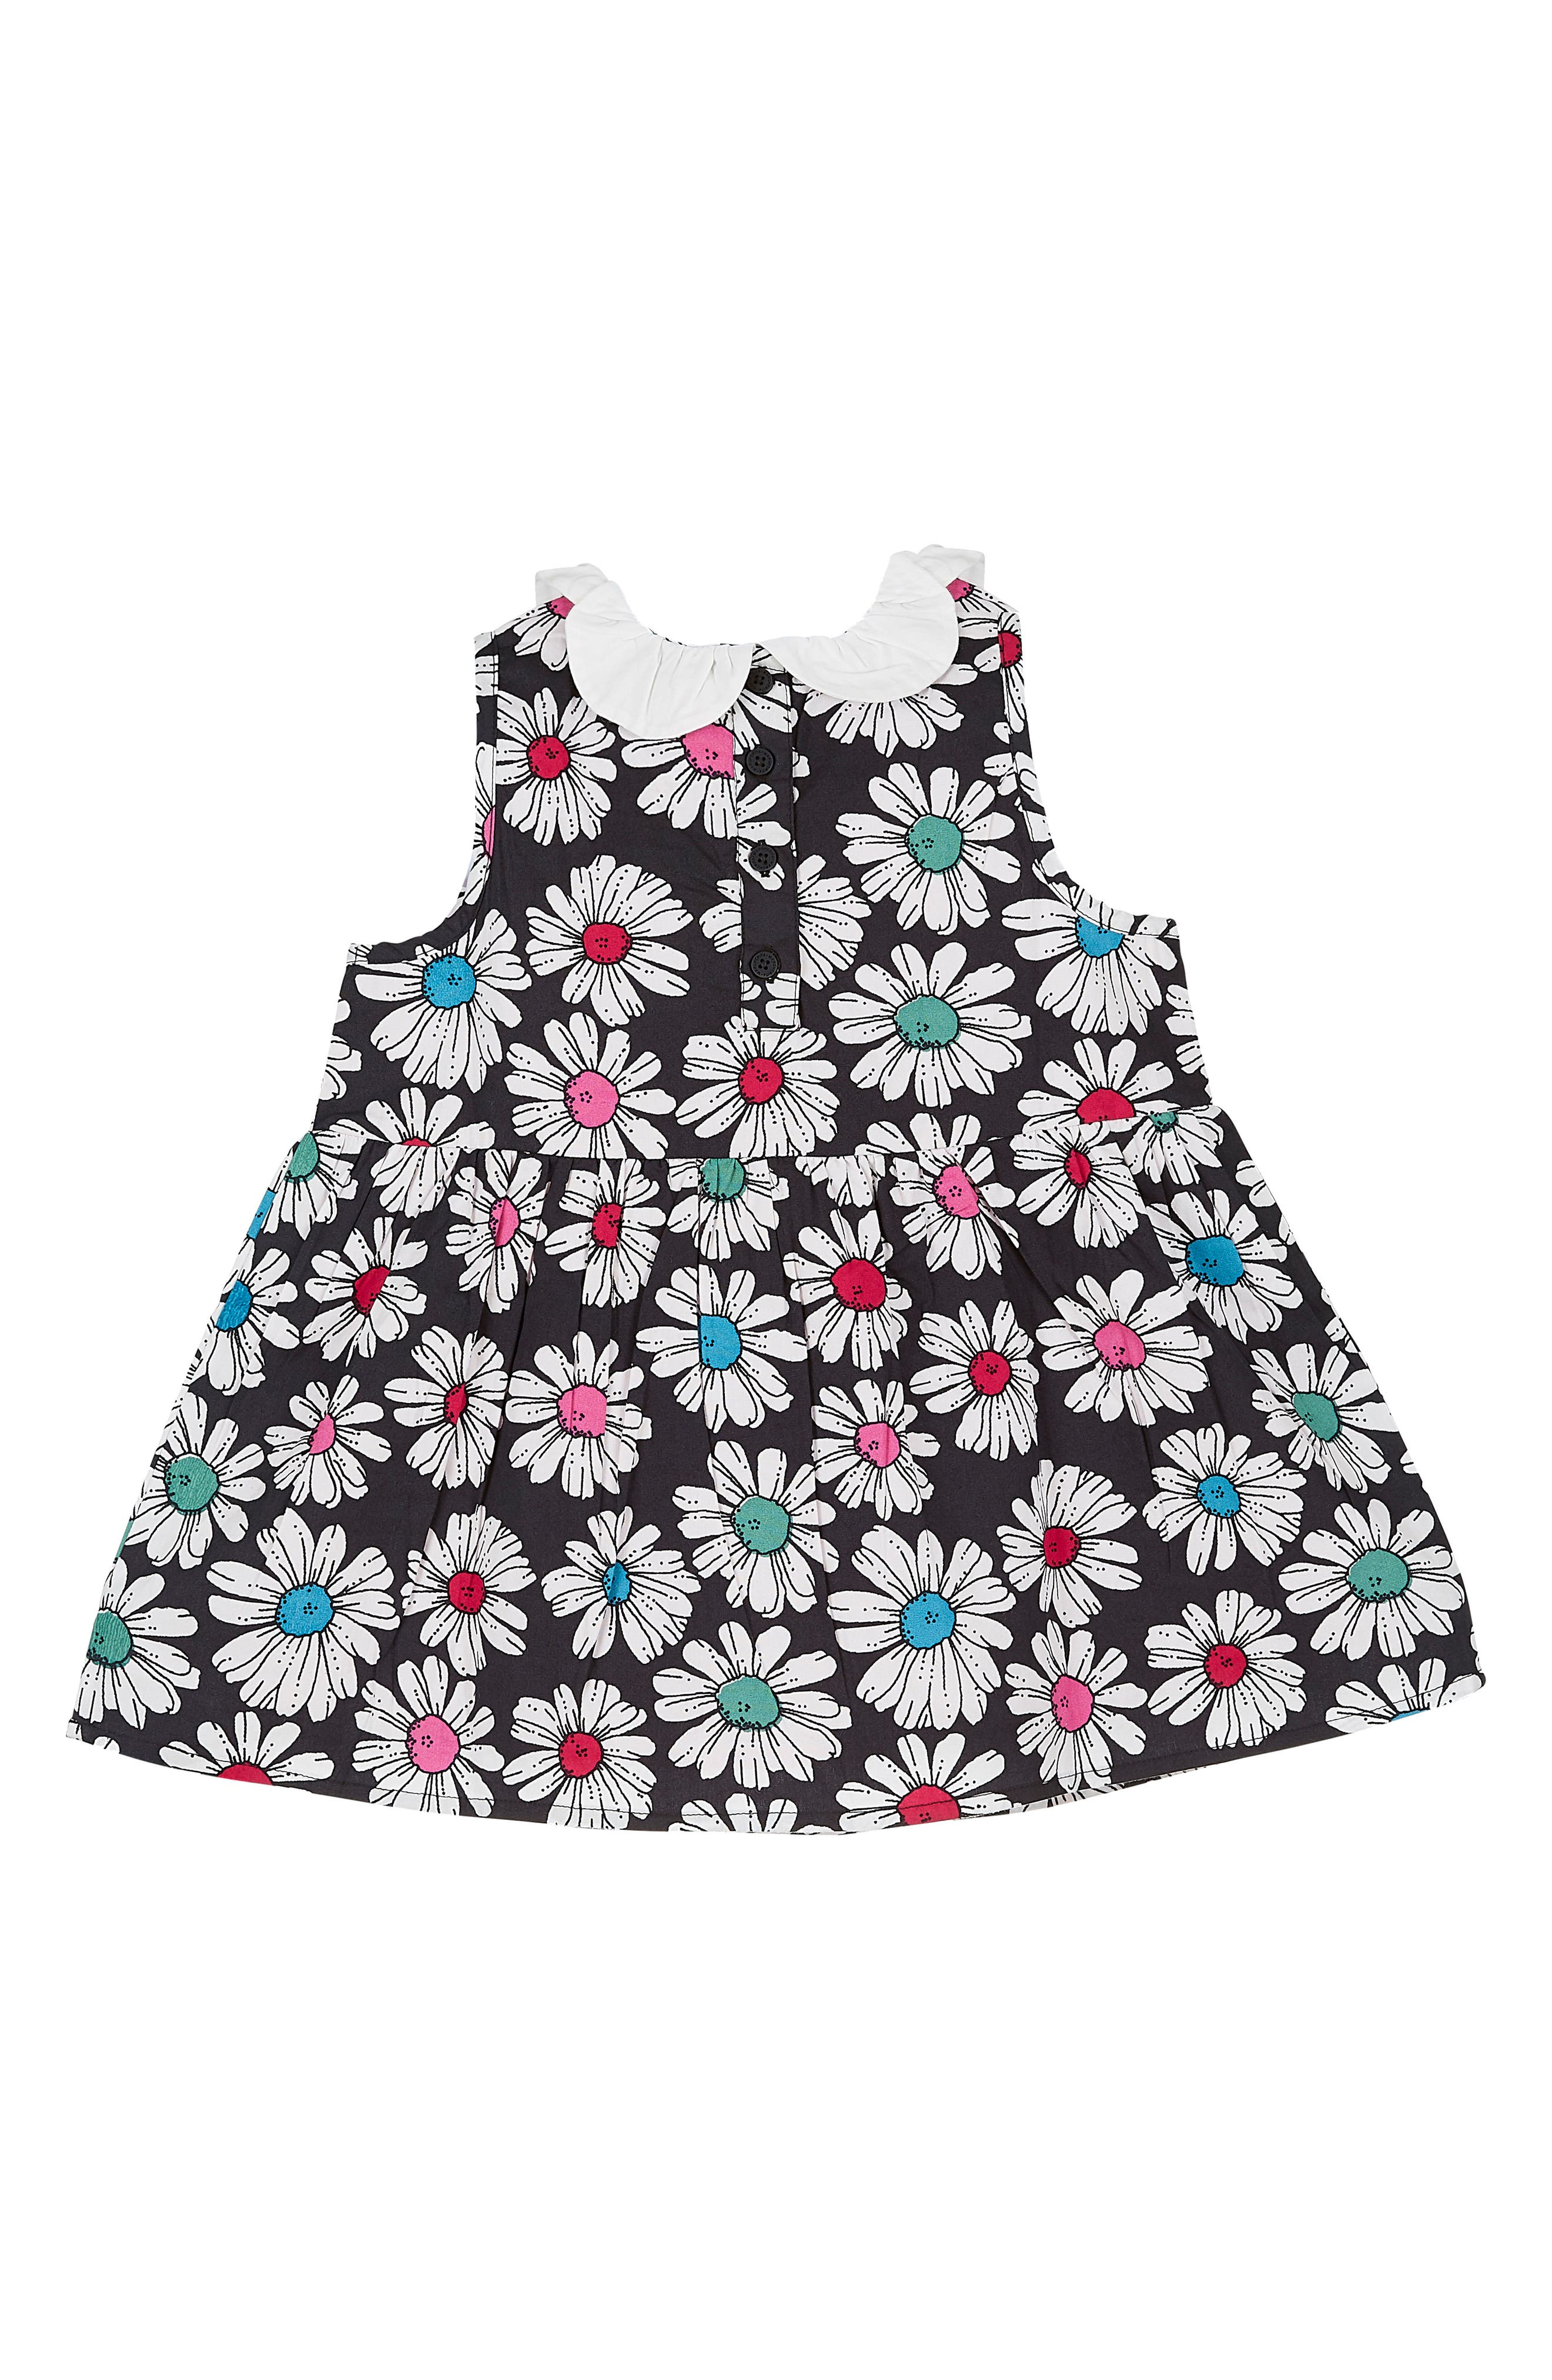 Floral Print Dress,                             Main thumbnail 1, color,                             001